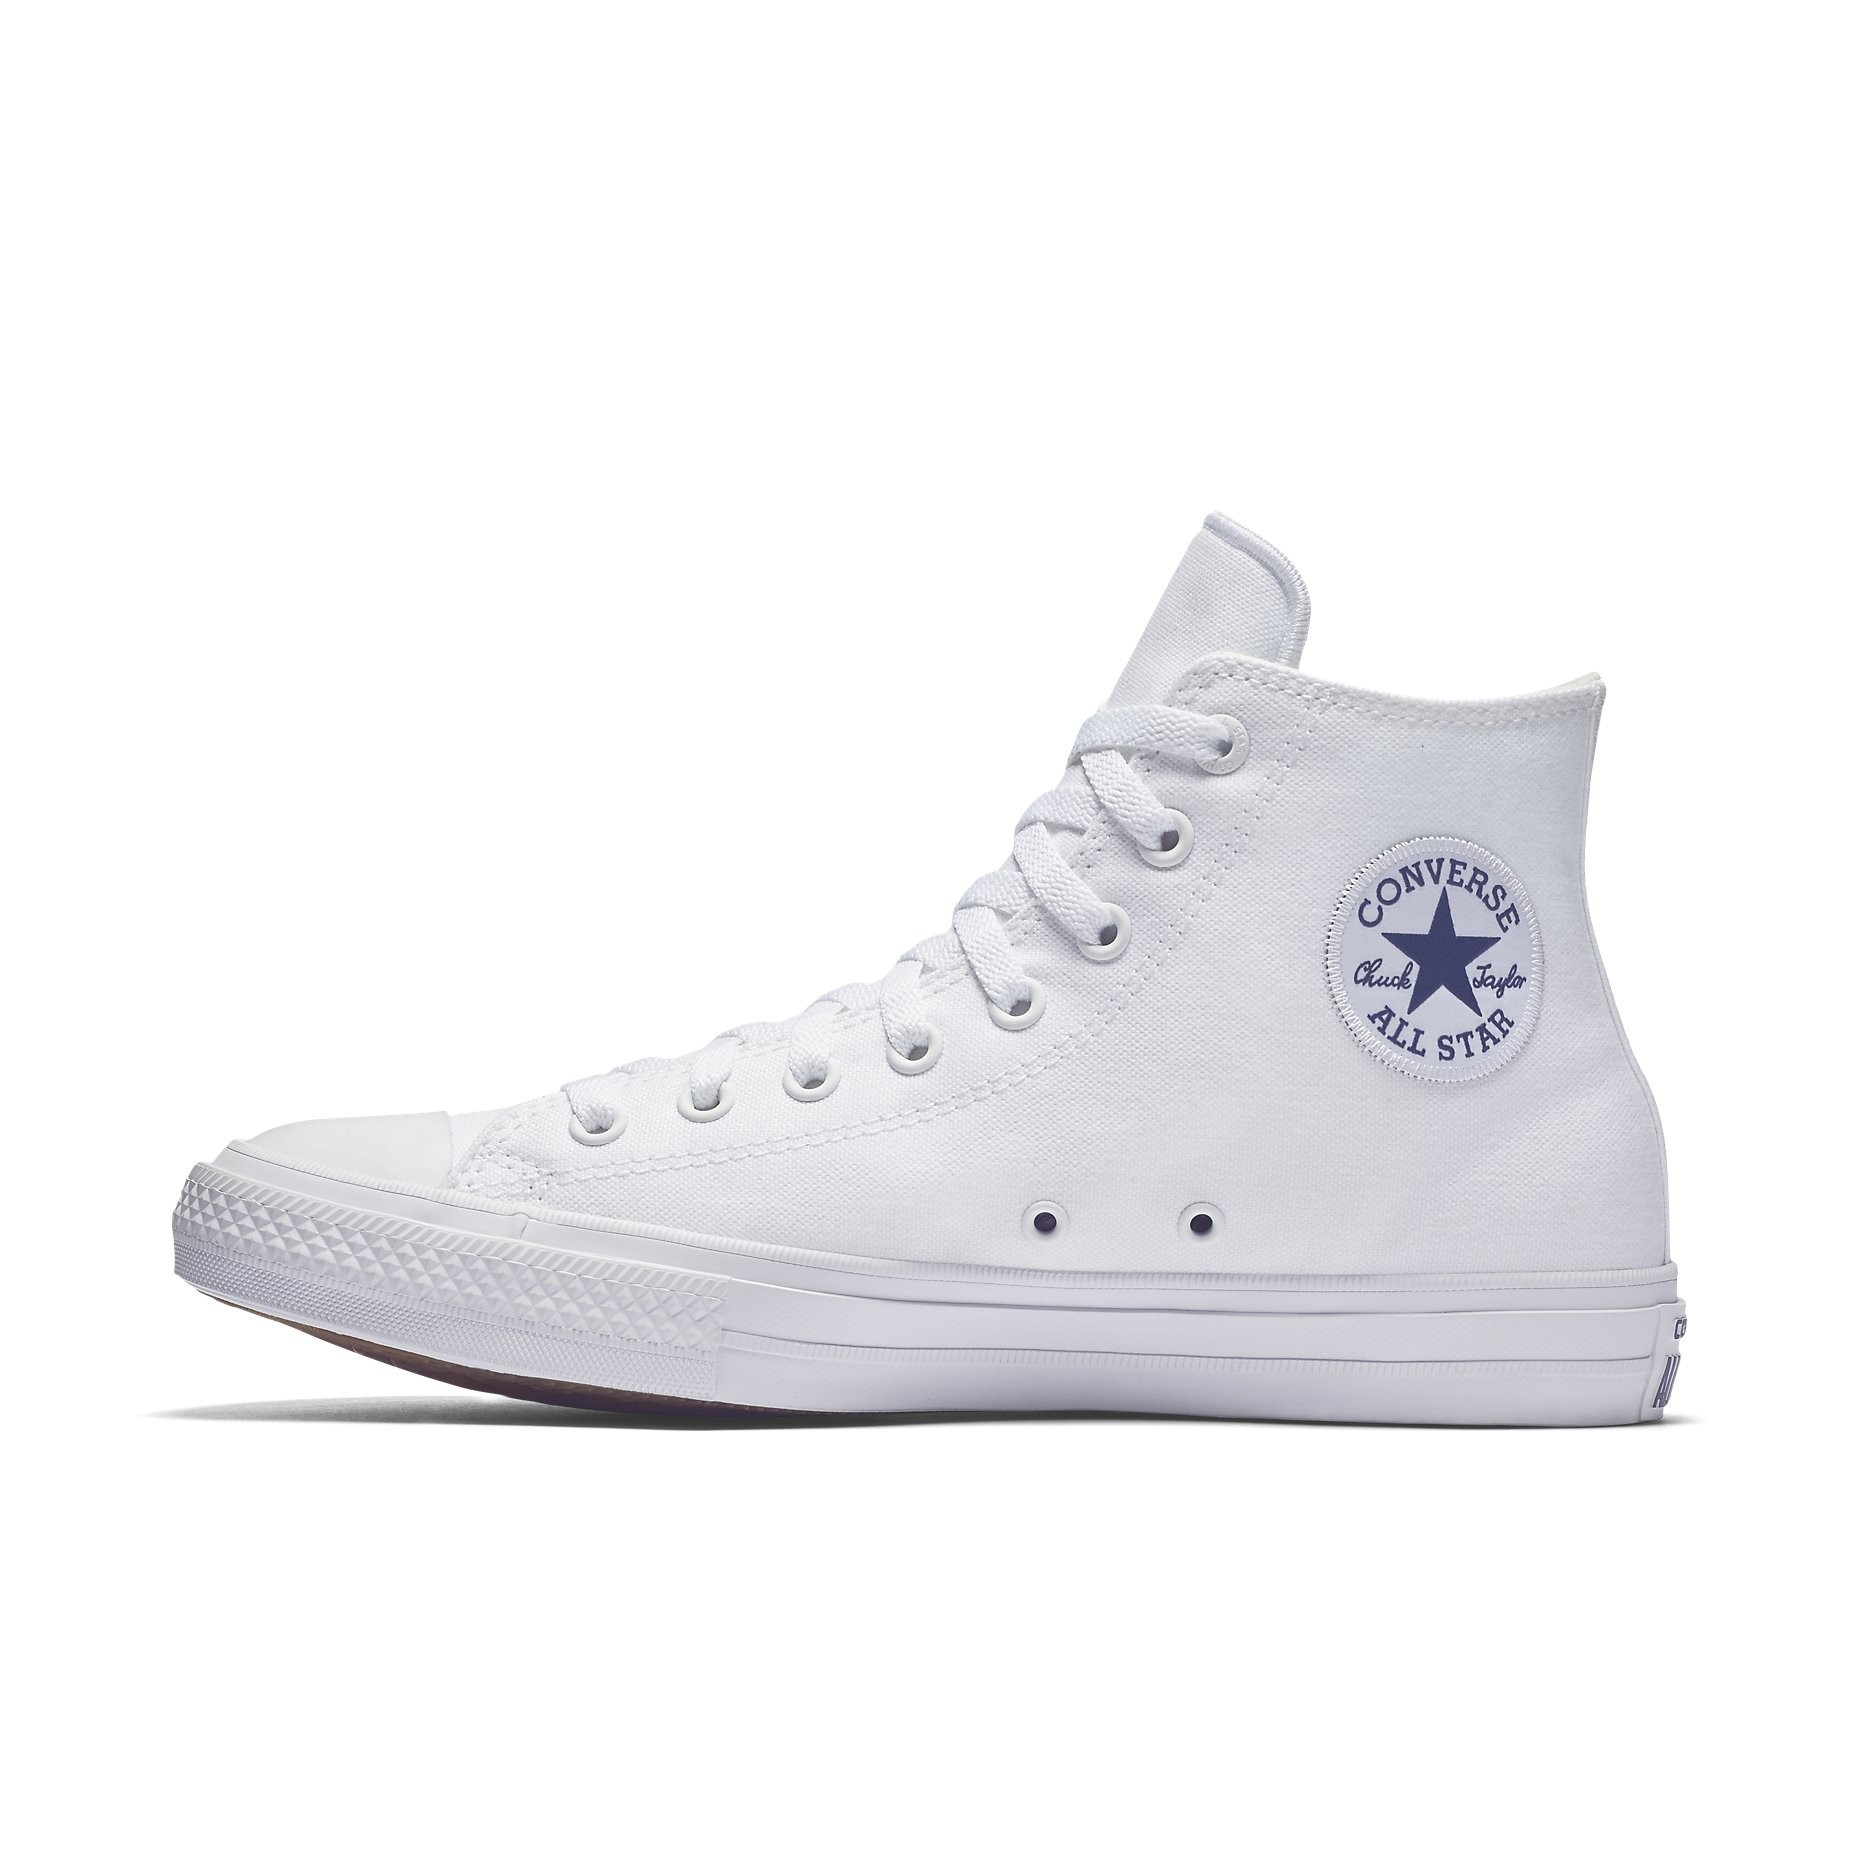 Converse Chuck Taylor All Star 2 High Top 150148C White